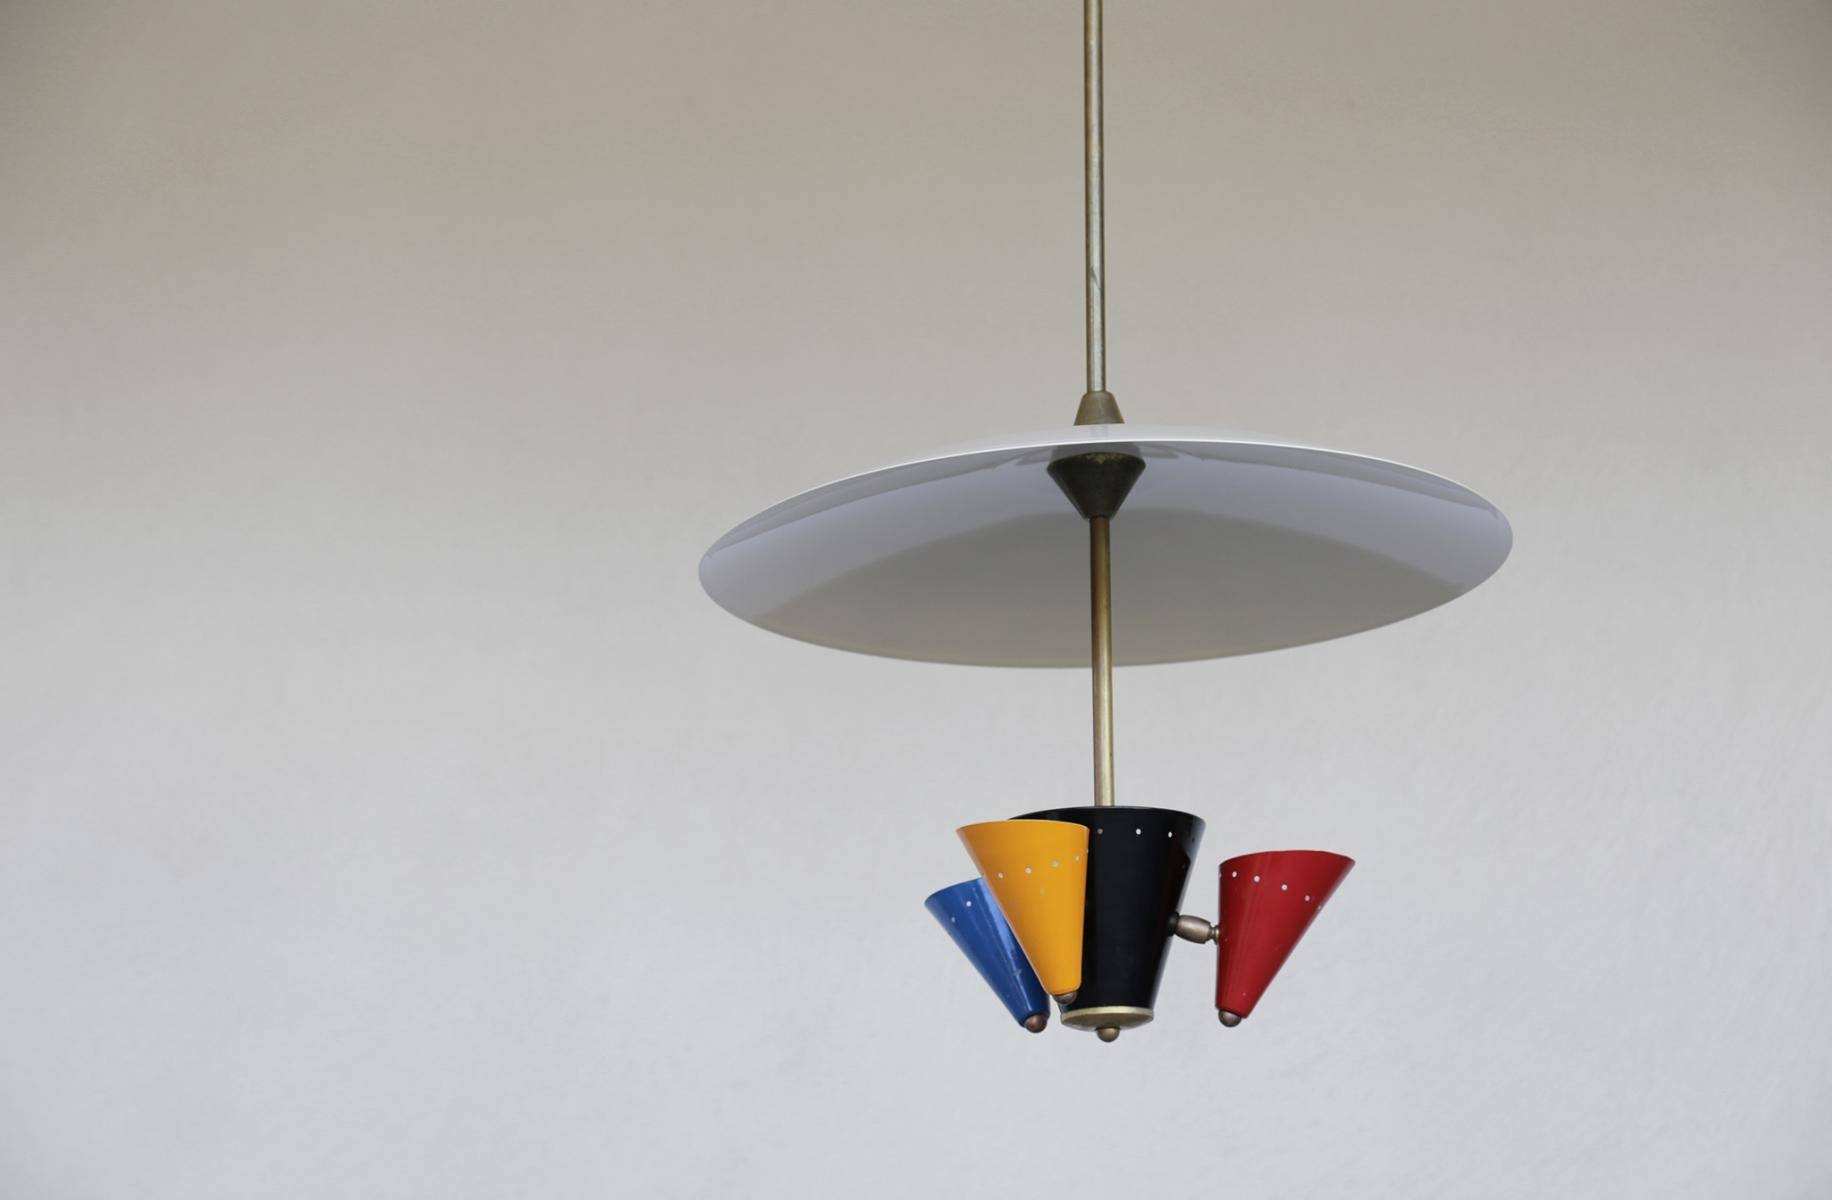 Vintage Italian Pendant Light, 1960S For Sale At Pamono regarding 1960S Pendant Lighting (Image 15 of 15)